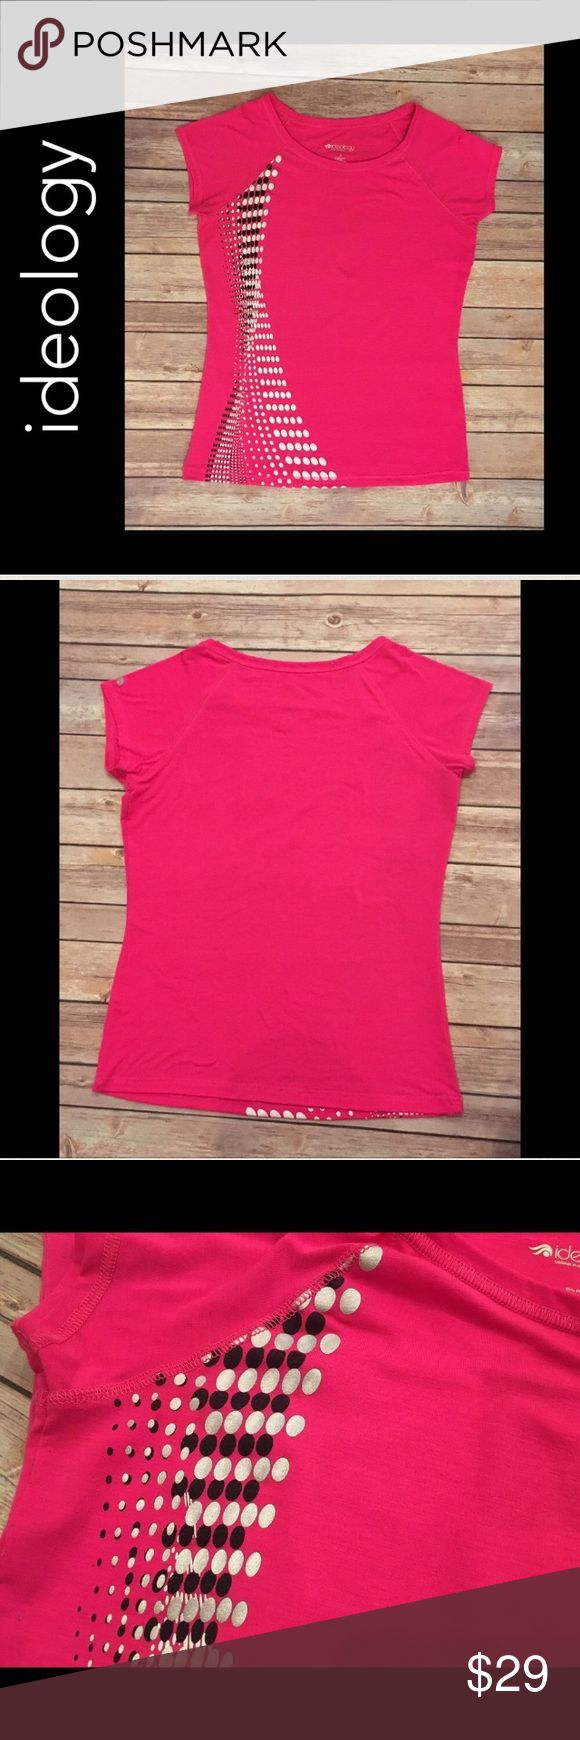 💐 ideology S Hot Pink SS Athletic T-Shirt ideology S Hot Pink Short Sleeve Athletic T-Shirt Small   Well-cared for; Hung to dry and never dried in the dryer  No holes  No stains Ideology Tops Tees - Short Sleeve